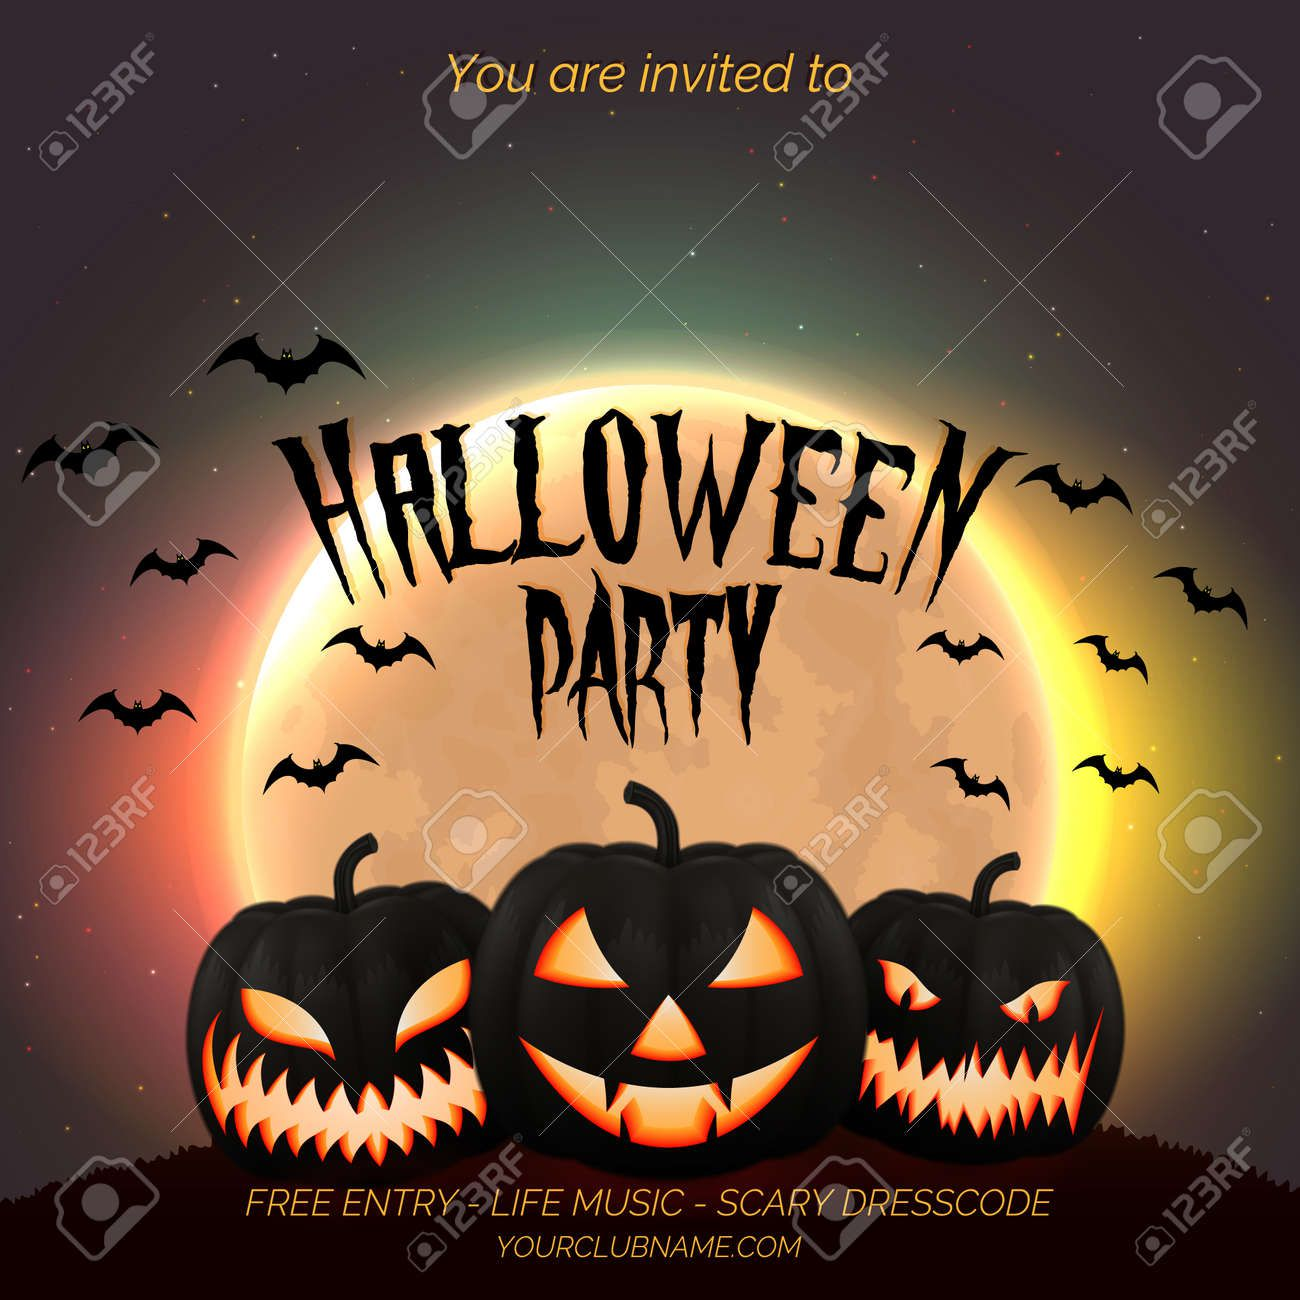 003 Staggering Free Halloween Party Flyer Template Highest Clarity  TemplatesFull